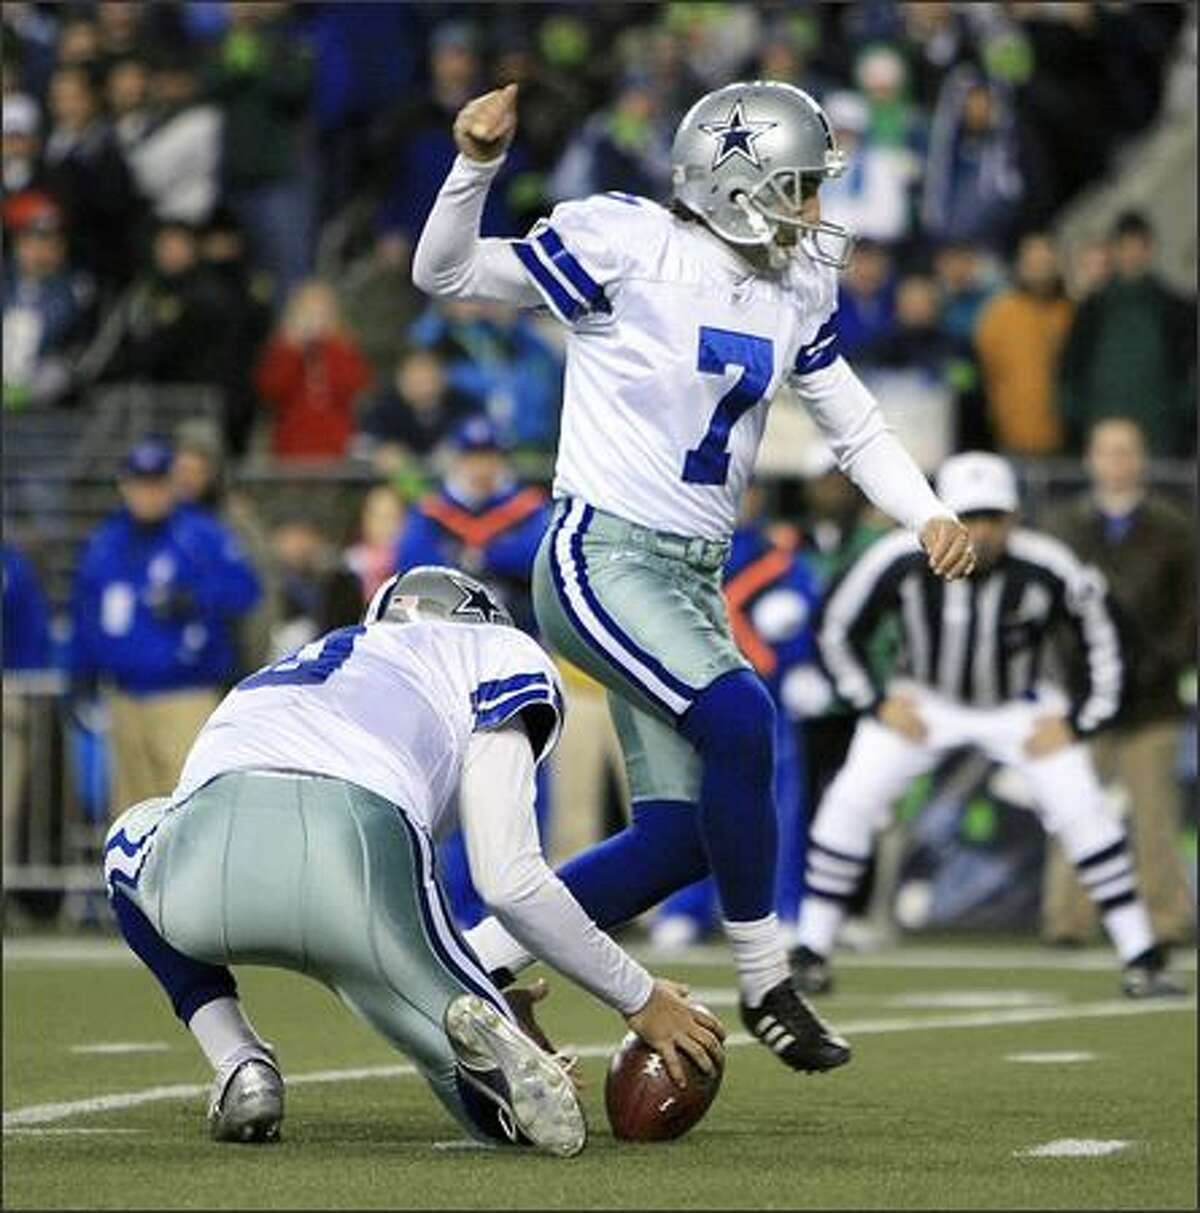 Dallas kicker Martin Gramatica steps over the ball as Tony Romo fumbles late in the fourth quarter.